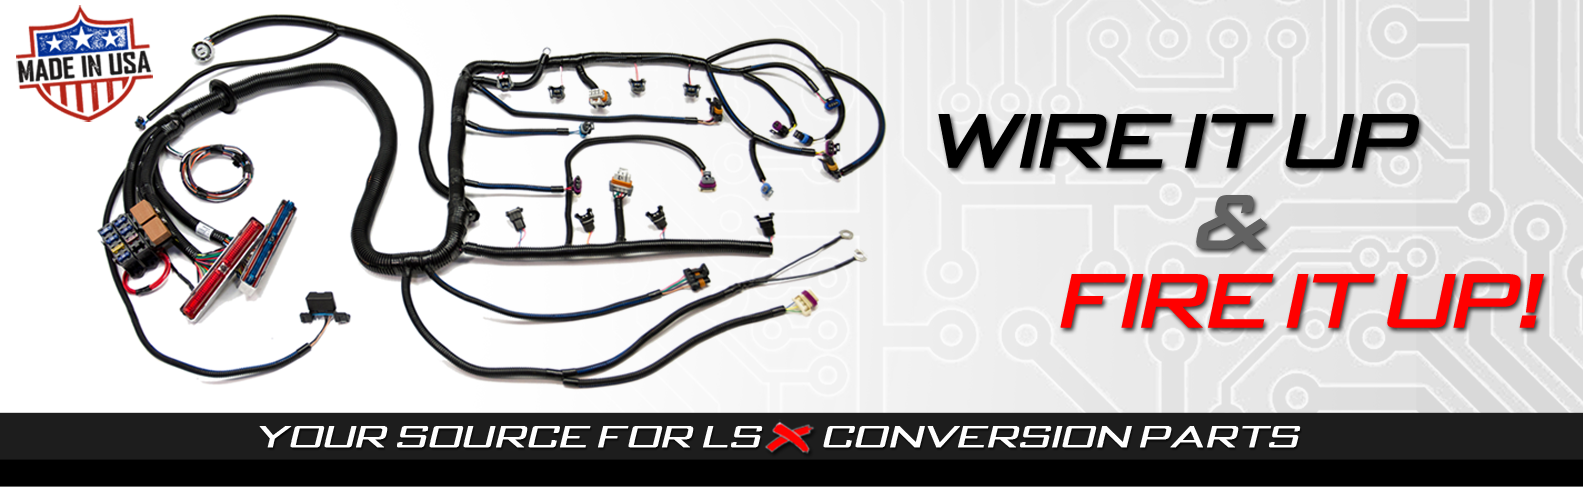 Wireitup on Ls1 Wiring Harness Diagram